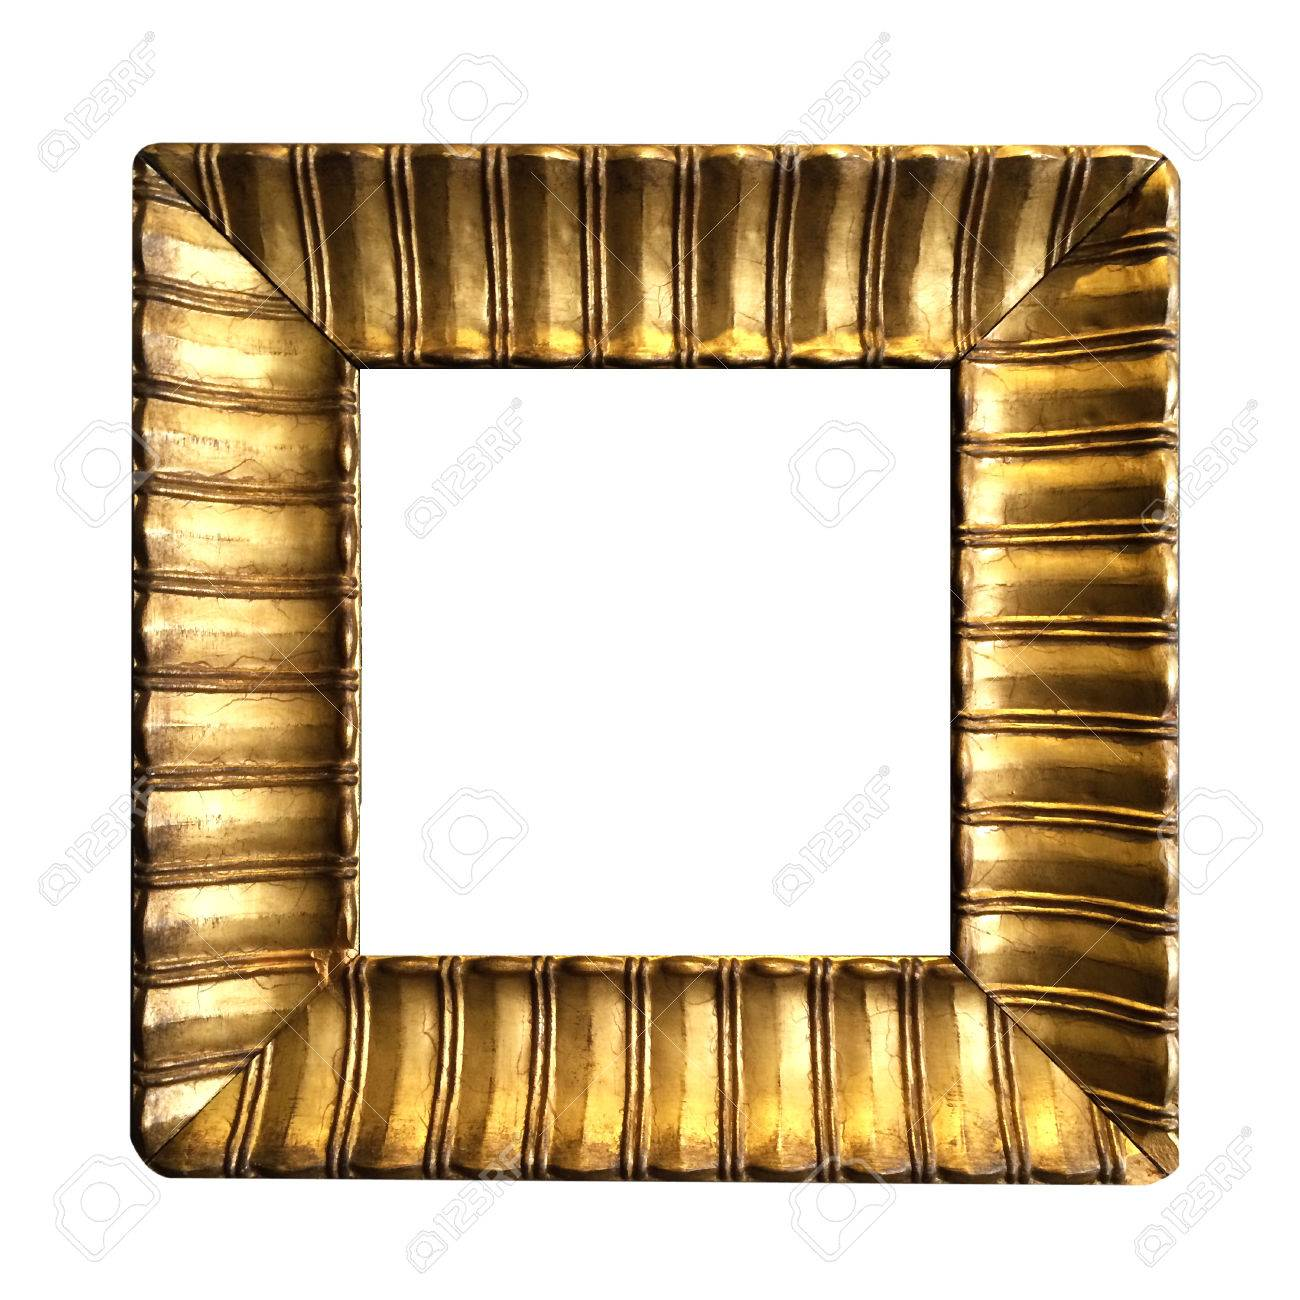 d3d4a12eba1b antique blank golden frame isolated on white background Stock Photo -  41929089